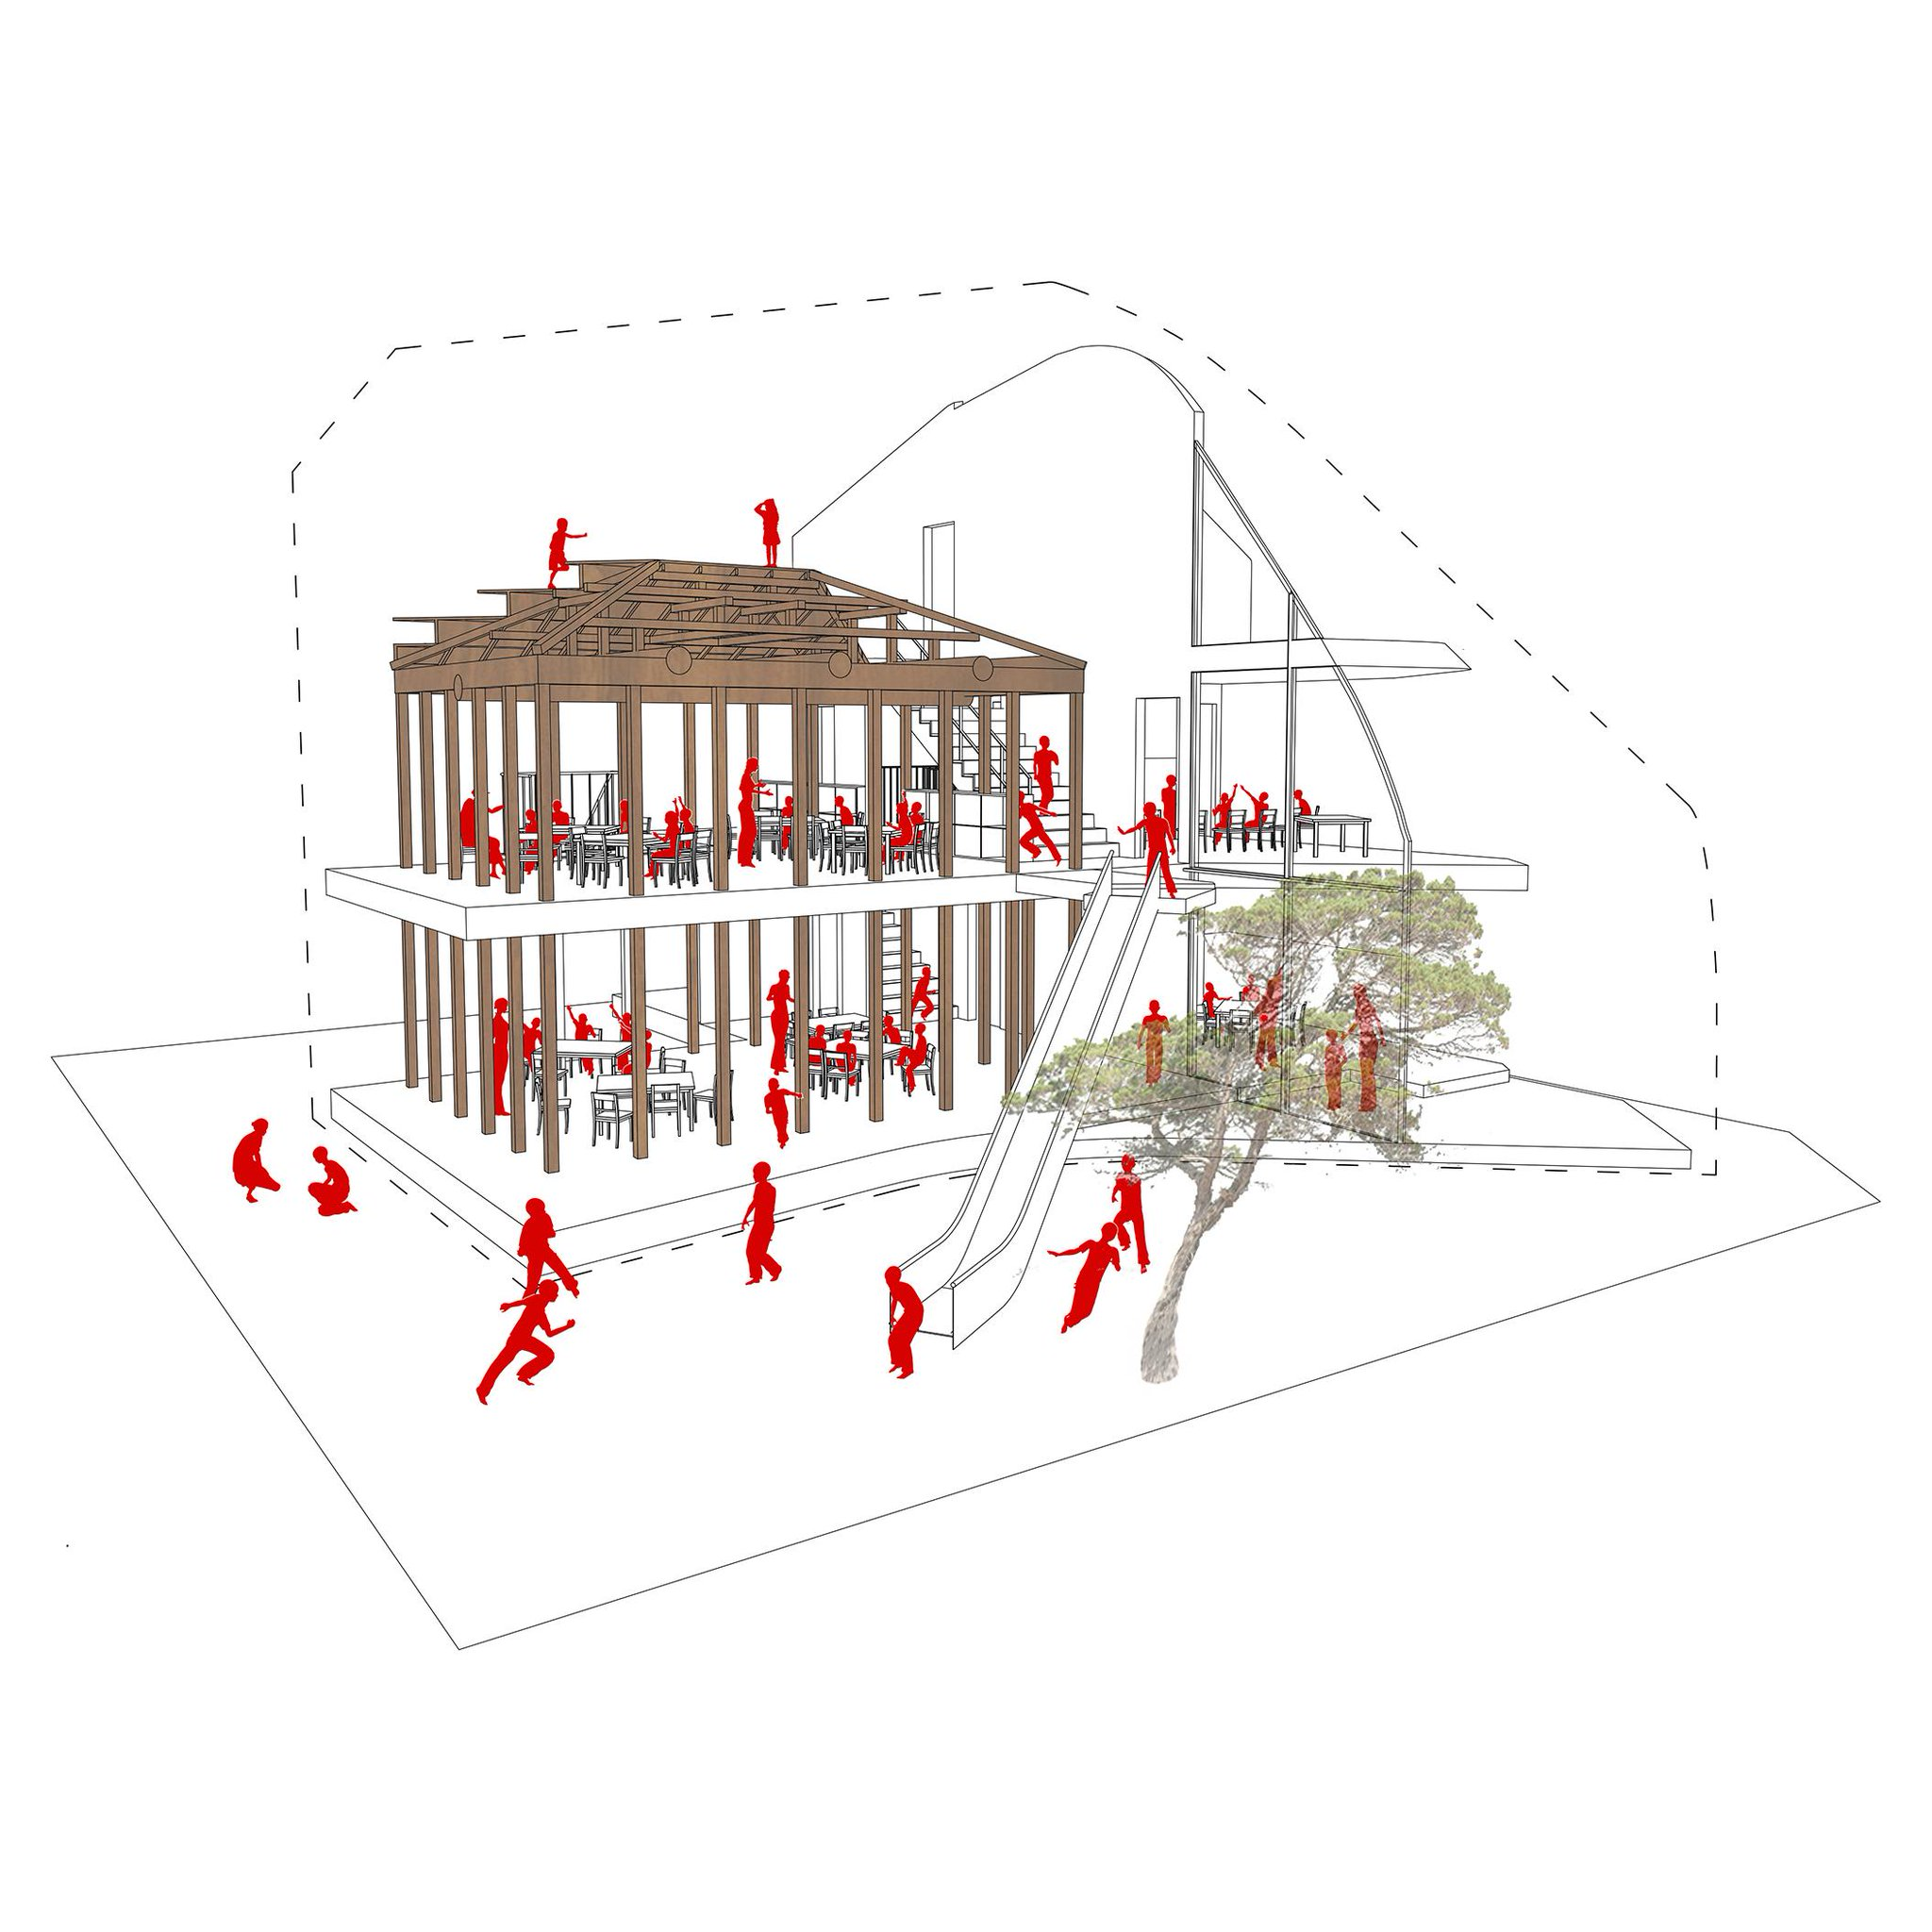 architecture section diagram minn kota plug wiring mad architects on twitter quotelevation and